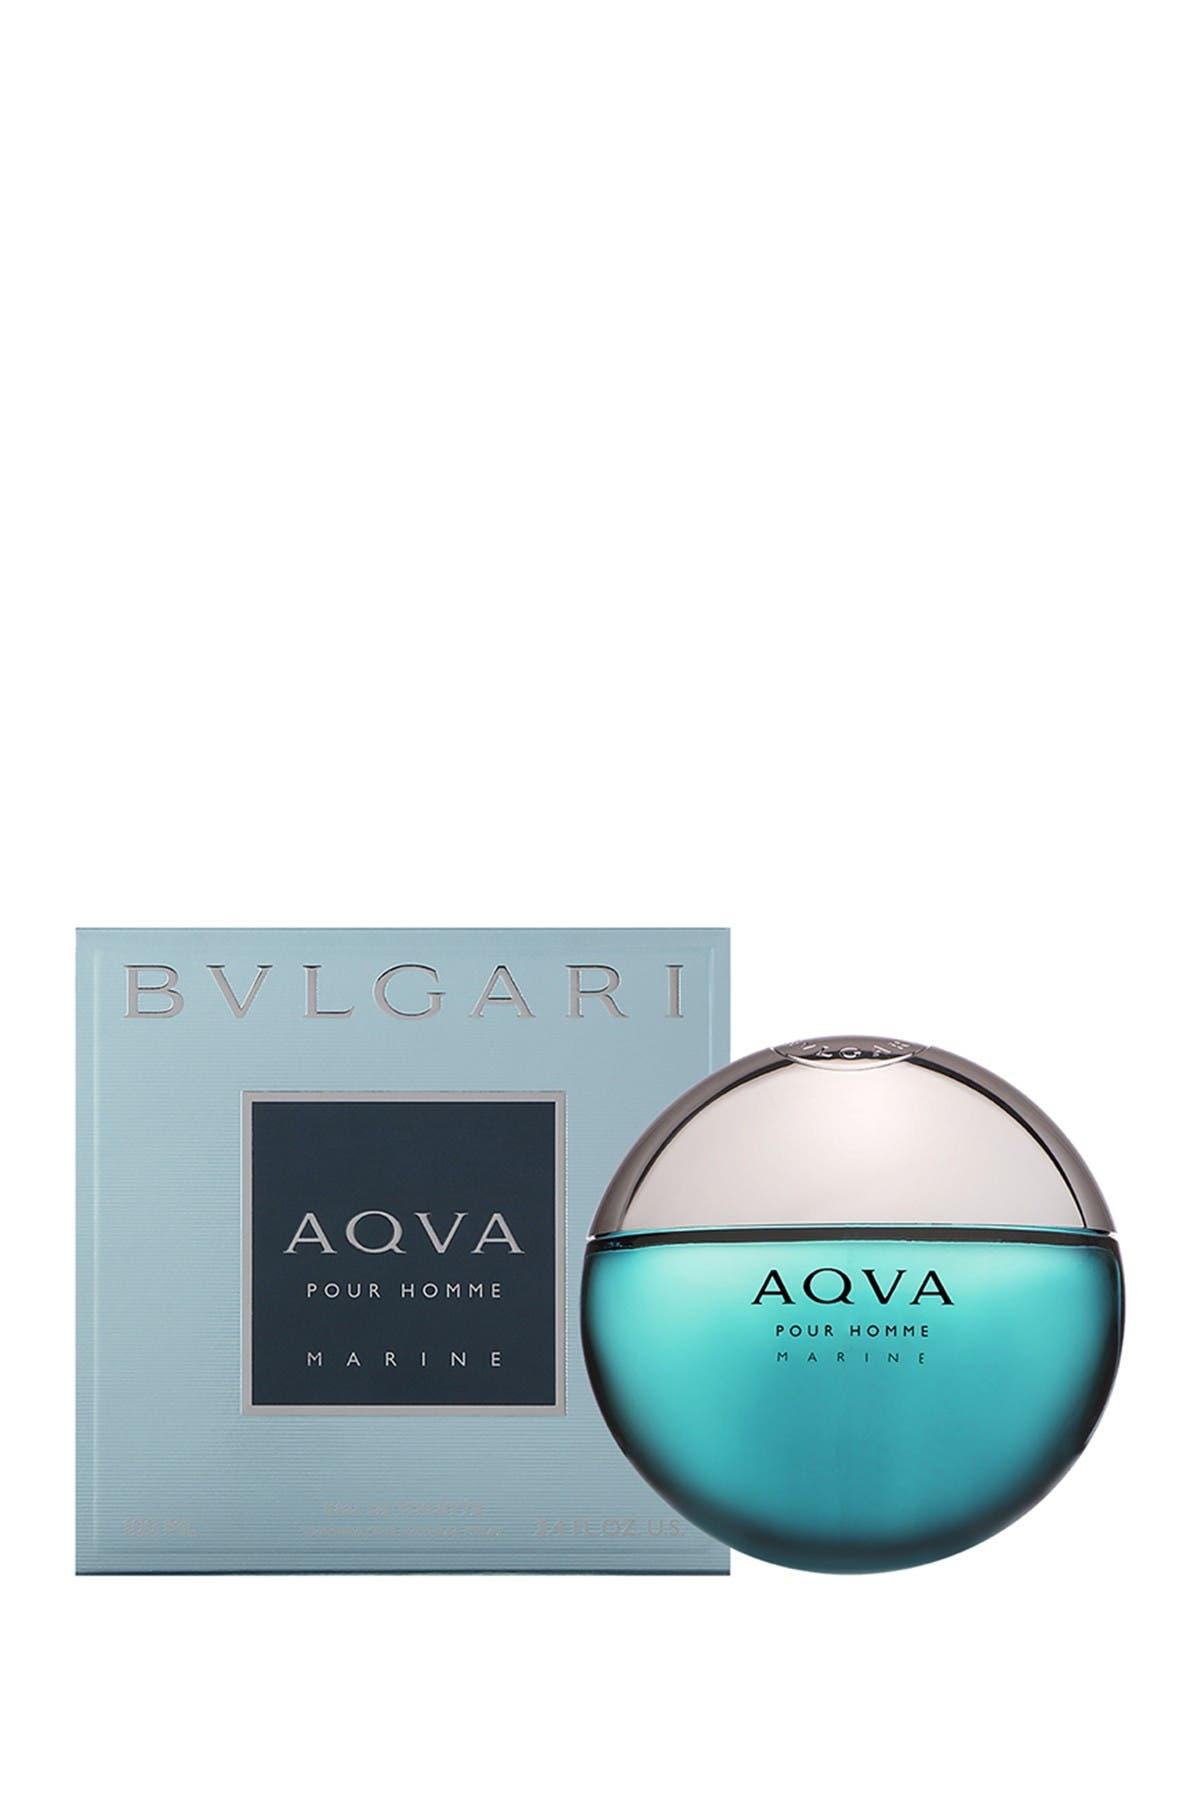 Image of Bvlgari Aqva Marine Eau de Toilette Spray - 3.4 fl. oz.